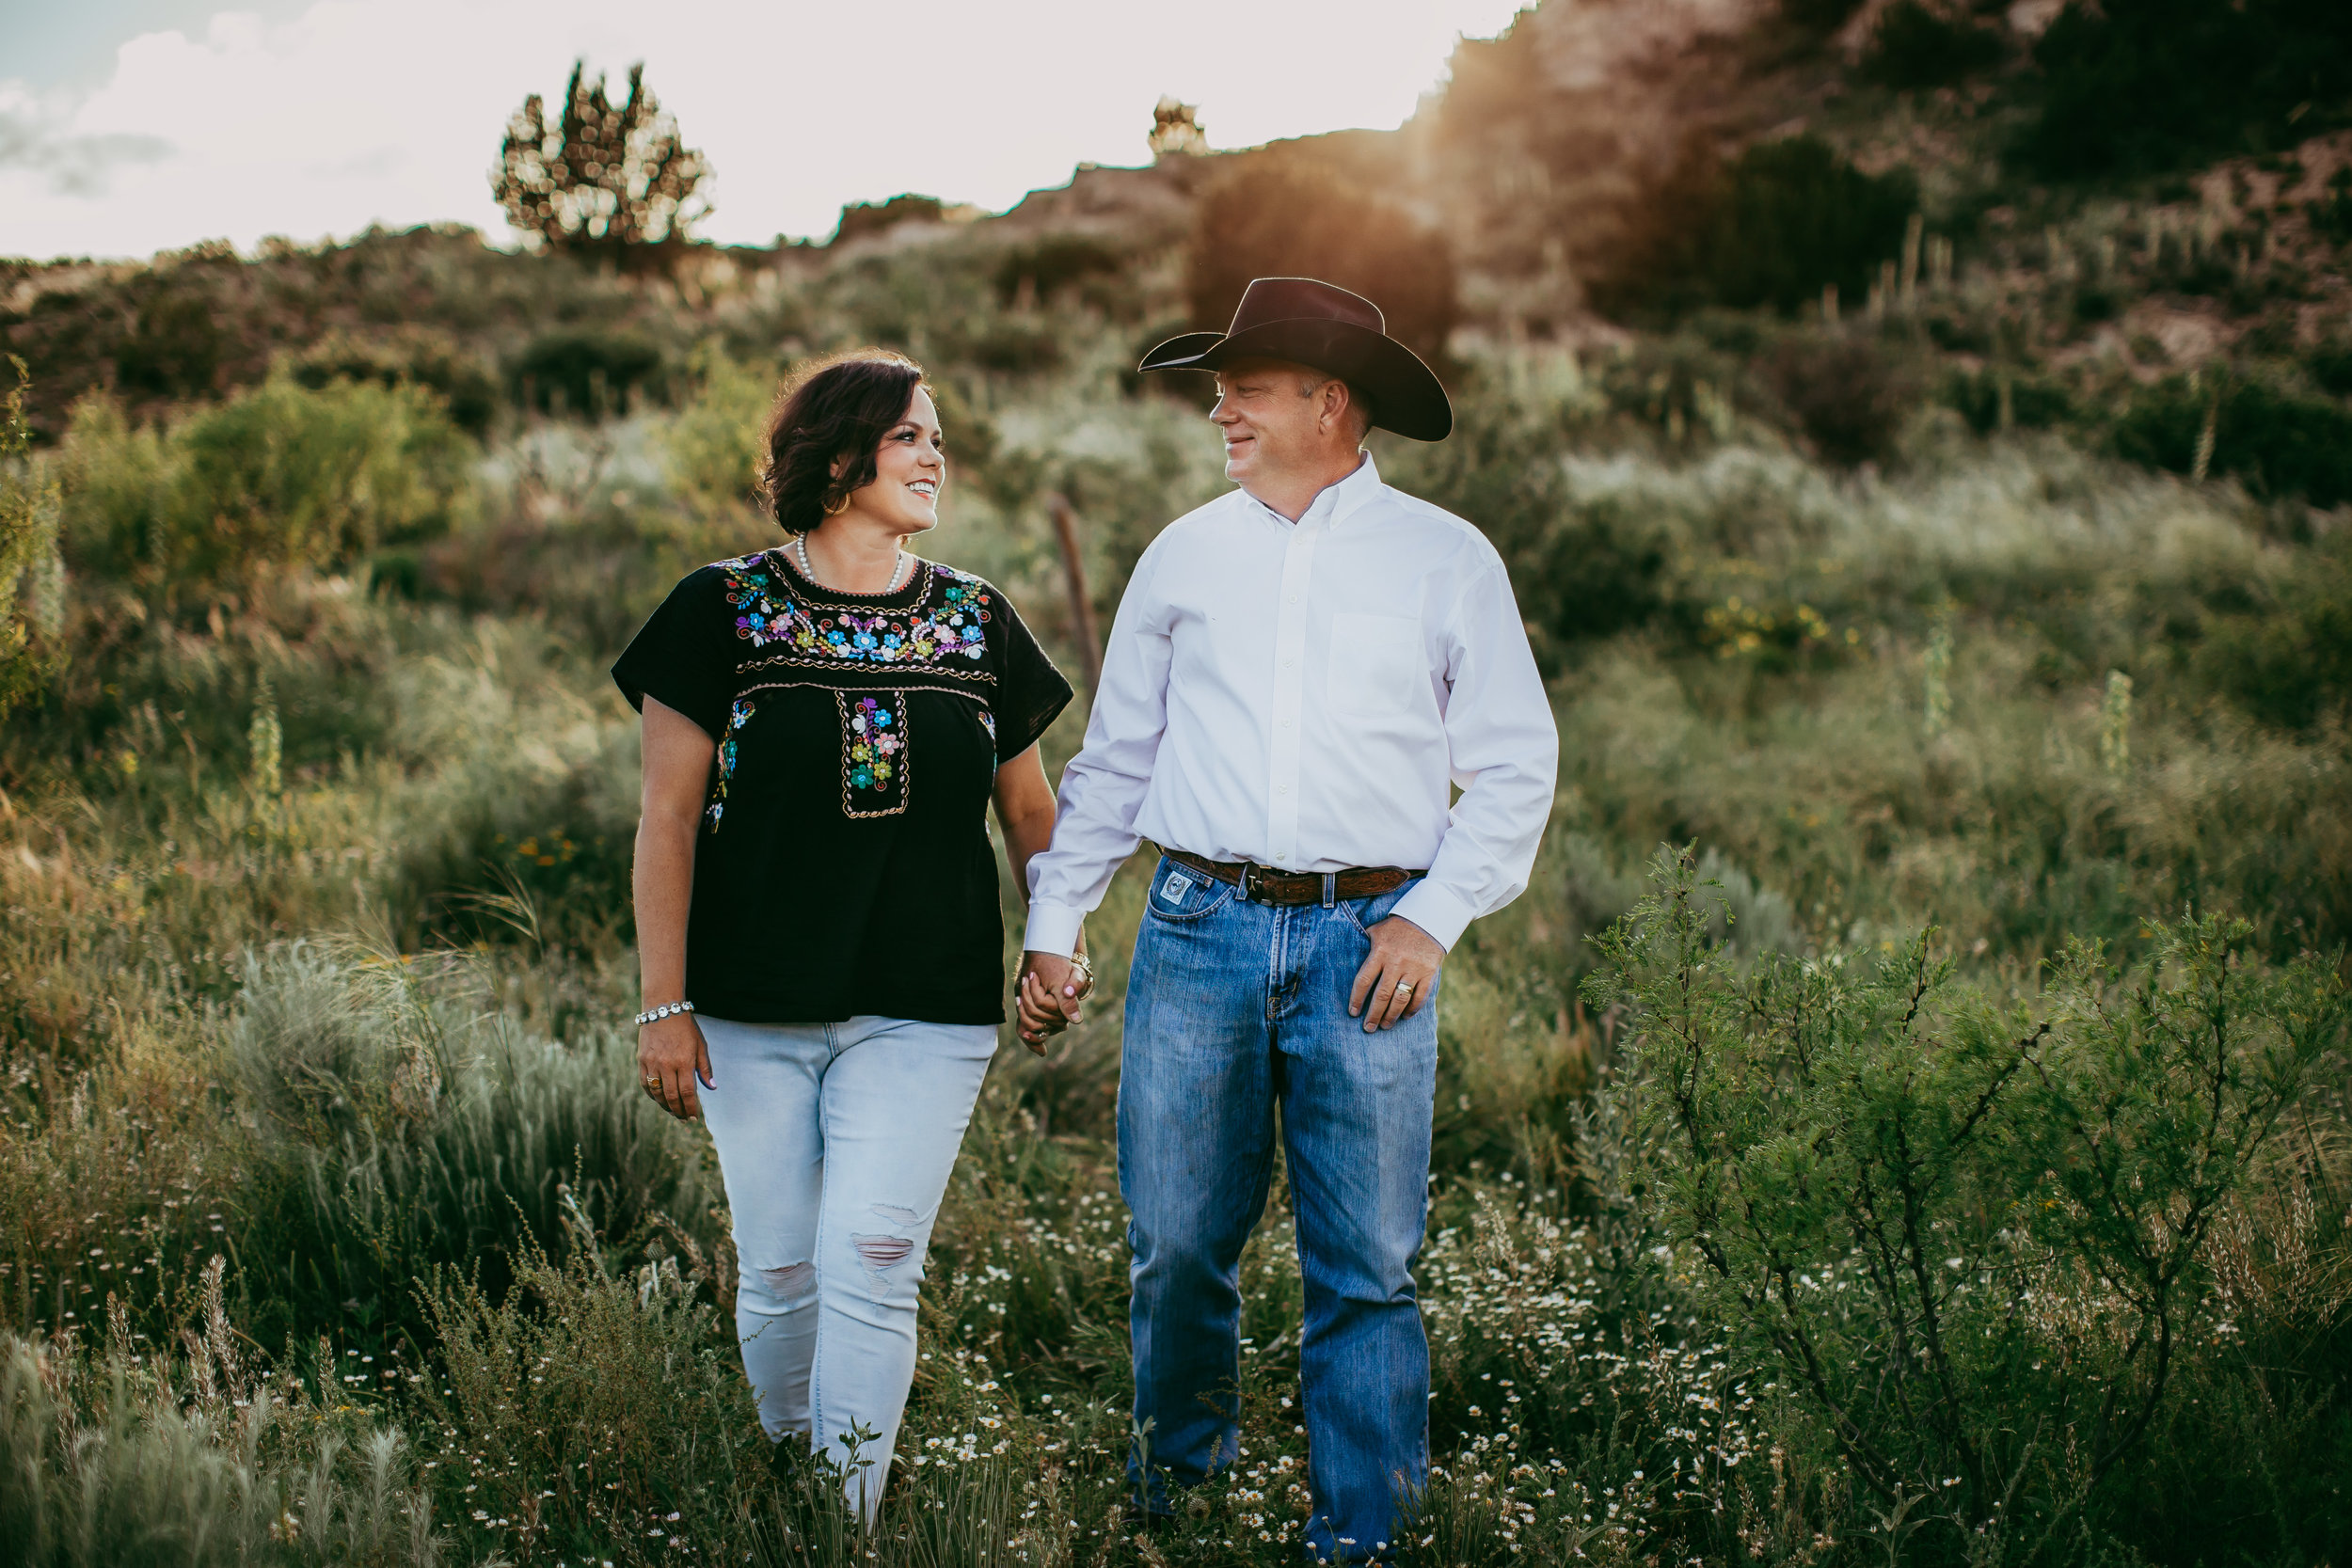 Mom and dad smiling at each other while walking through the pastures of their family ranch #tealawardphotography #texasfamilyphotographer #amarillophotographer #amarillofamilyphotographer #lifestylephotography #emotionalphotography #familyphotosoot #family #lovingsiblings #purejoy #familyphotos #familyphotographer #greatoutdoors